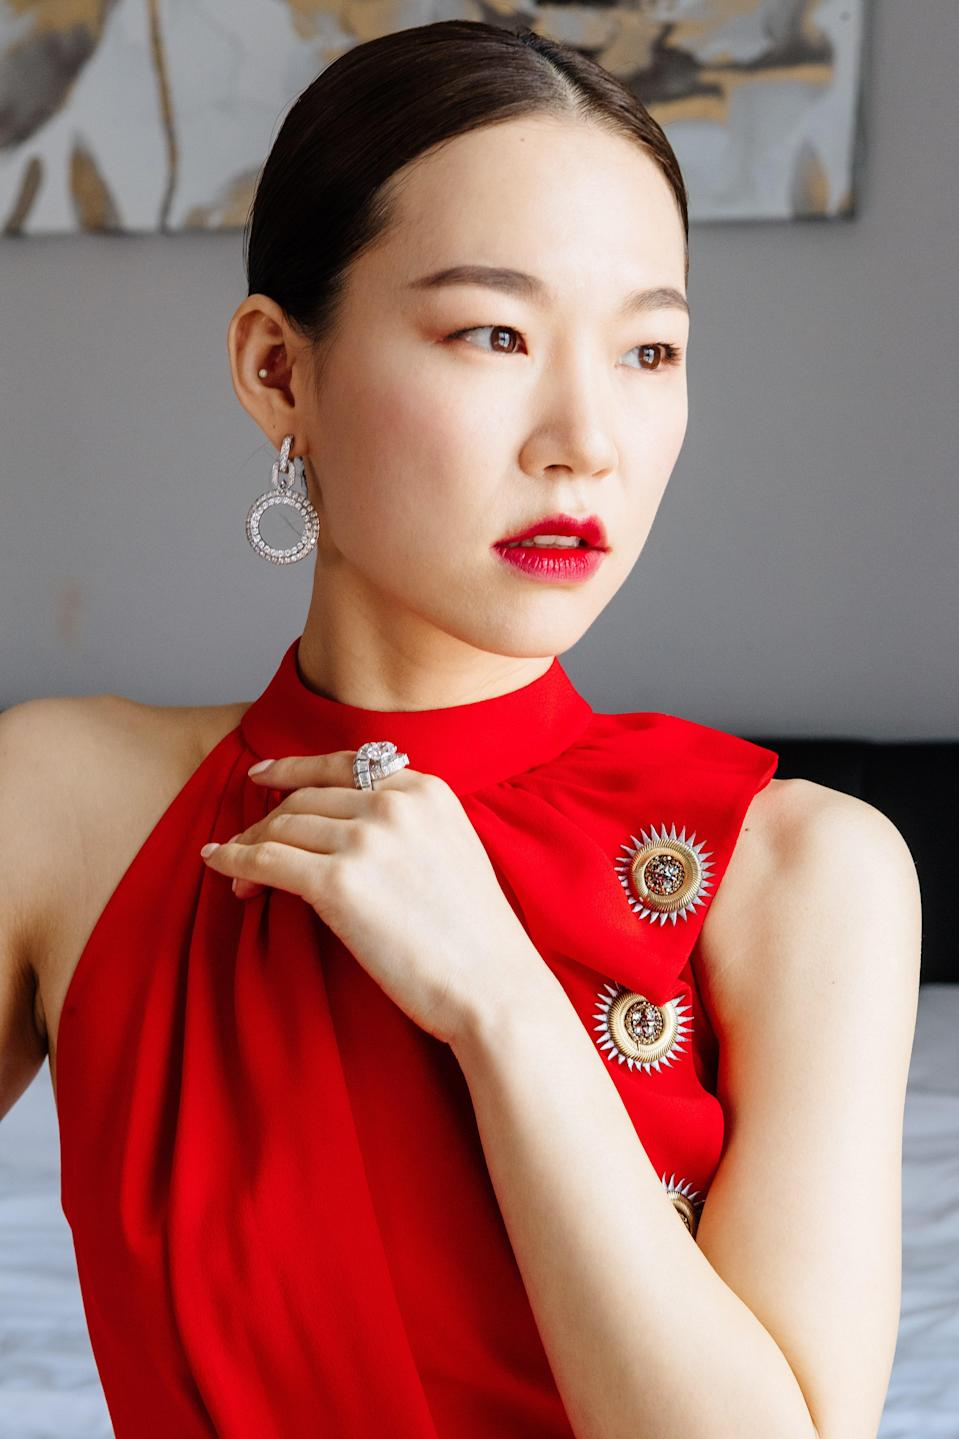 """""""It's very feminine, but holds strength at the same time,"""" says Han of her final beauty look. """"As red is fresh yet fierce, I tried to mix those two aspects together."""""""